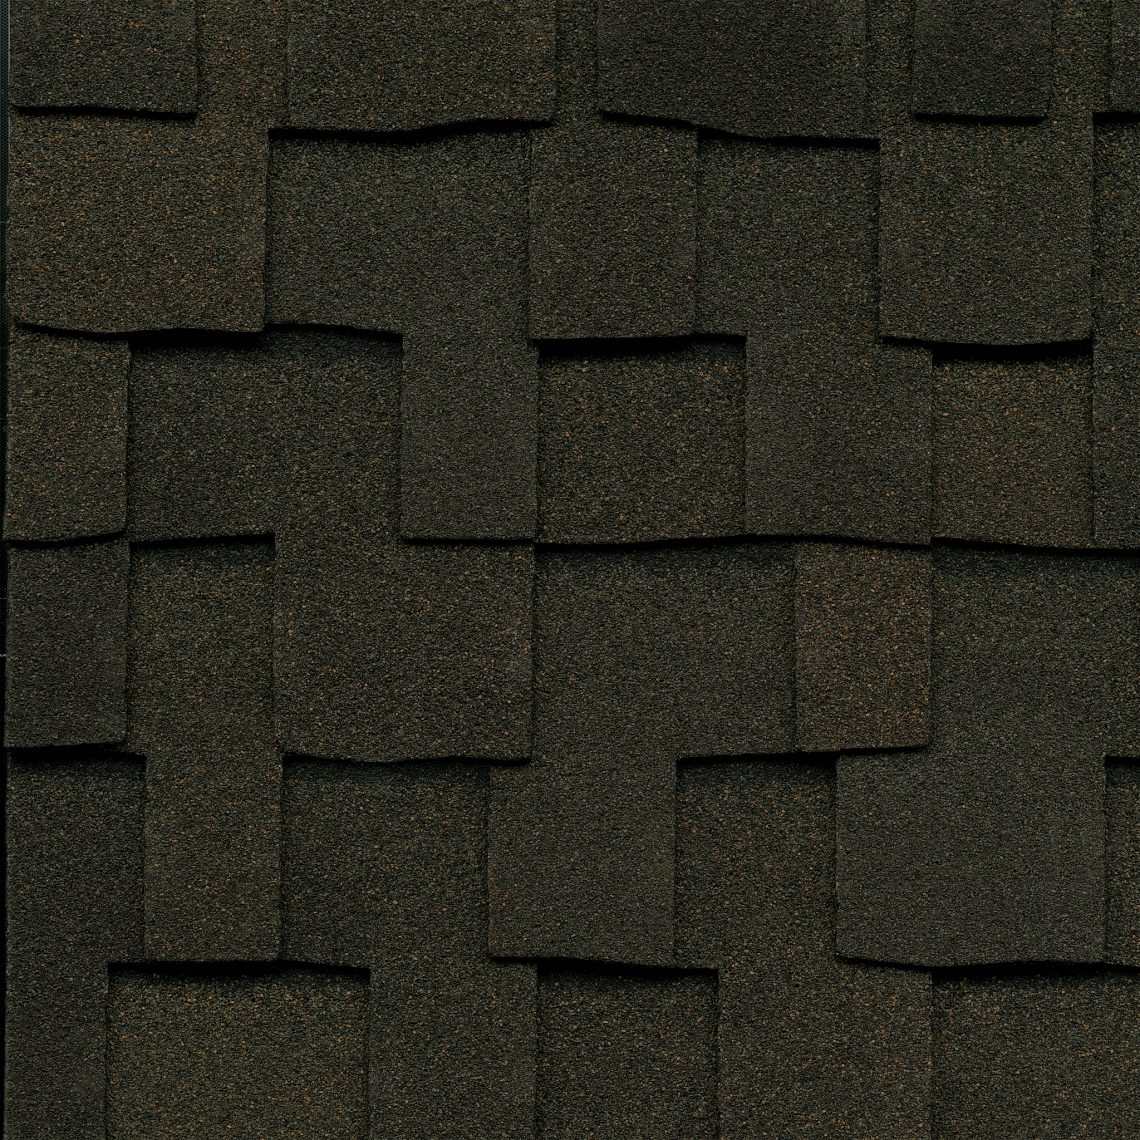 GAF Grand SequoiaR Roofing Shingles